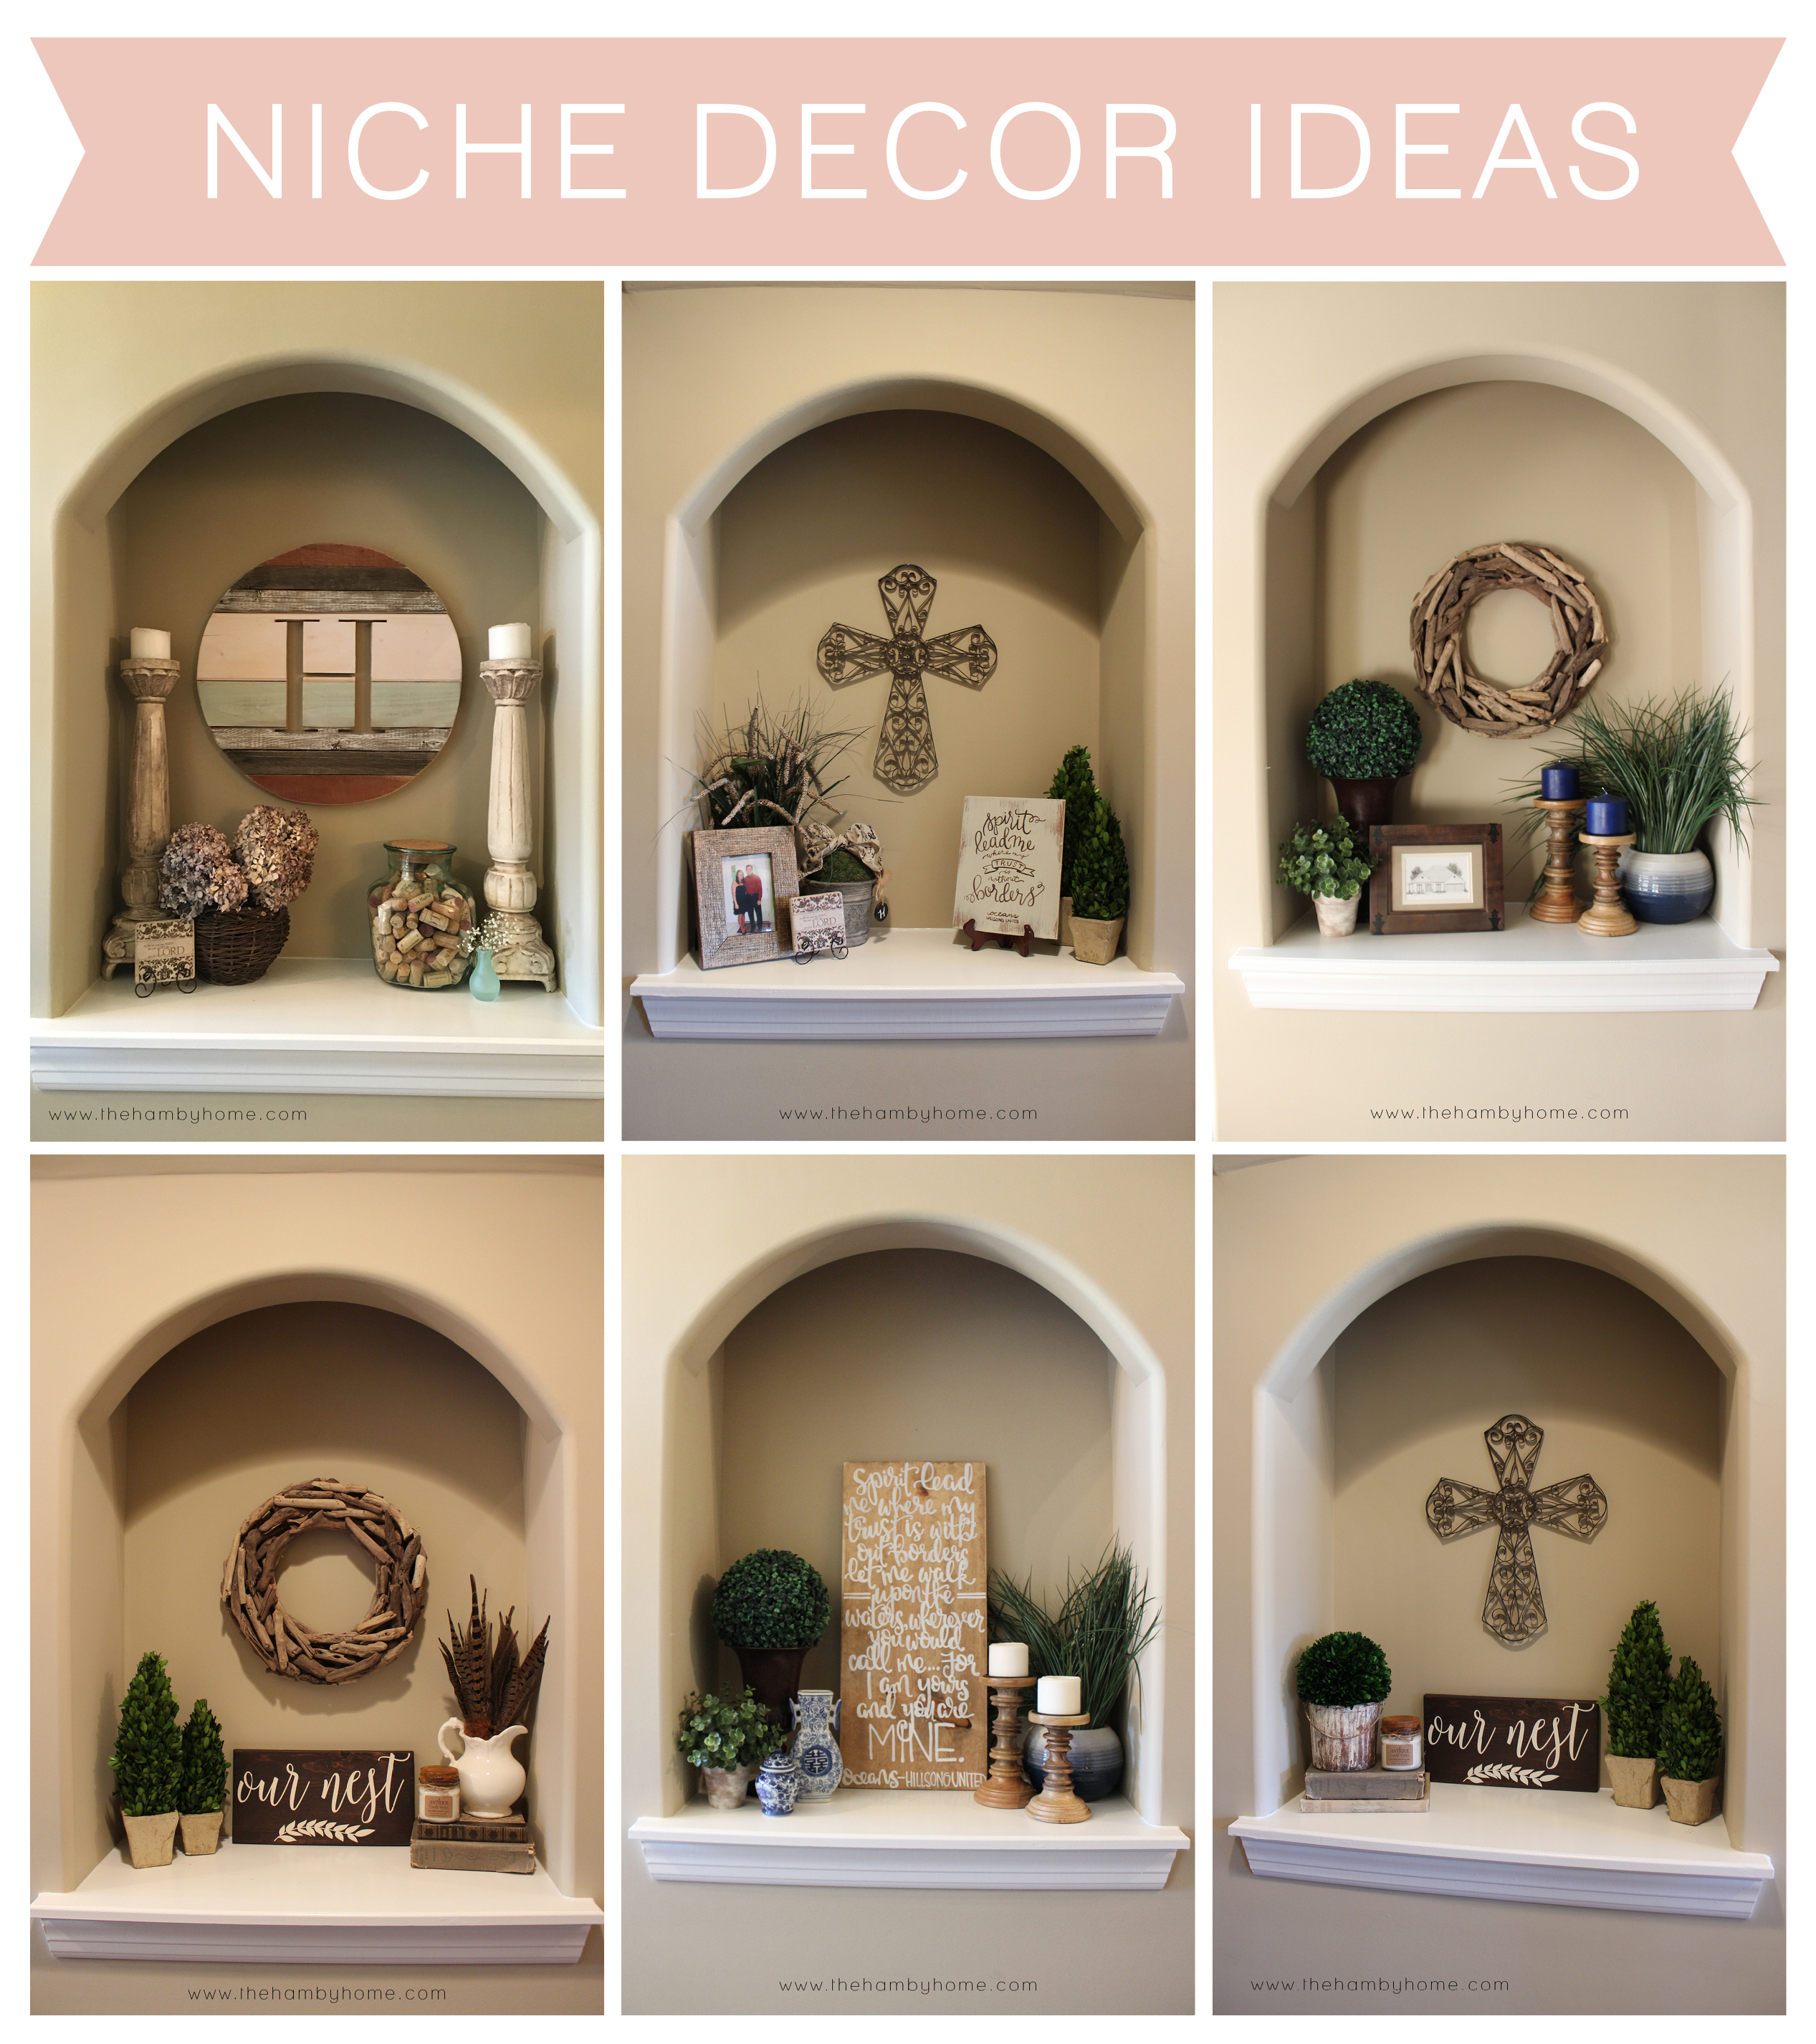 Niche decor ideas the hamby home for For the home decor